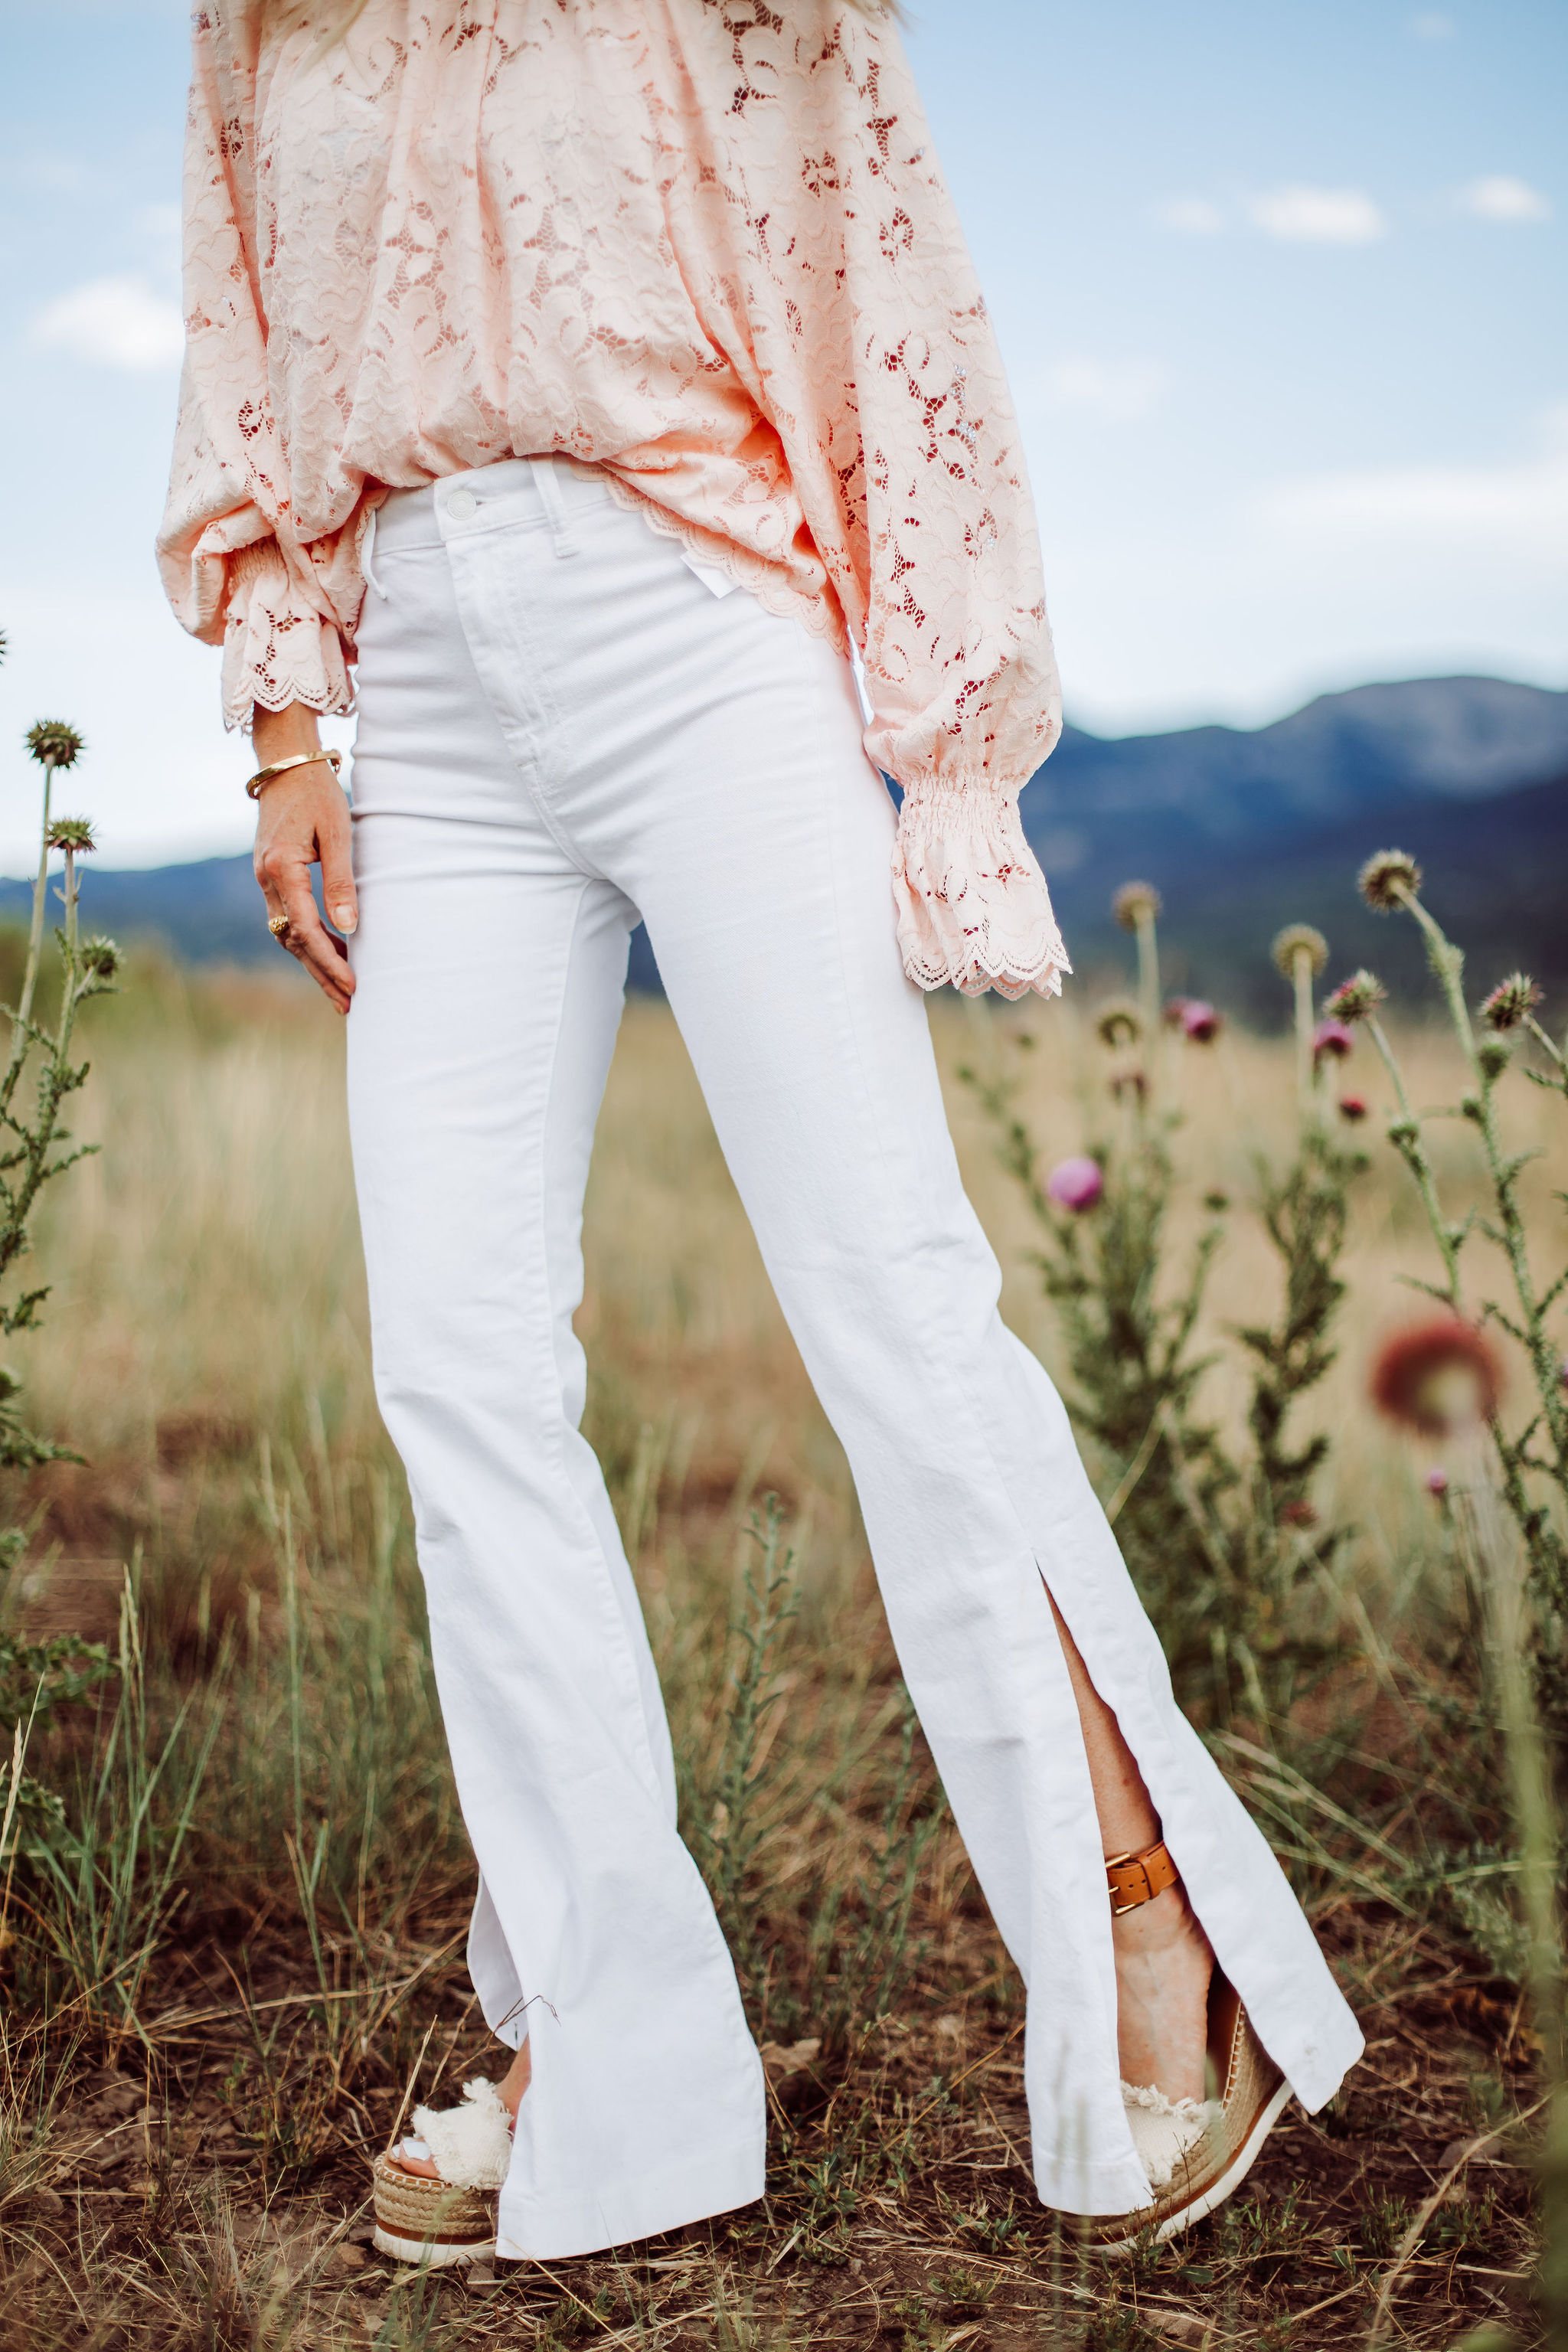 White Jeans for women Over 40, Fashion blogger Busbee Style wearing white 7 For All Mankind split hem jeans, See by Chloe espadrille wedges, pink lace long sleeve Free People top in Telluride, Colorado